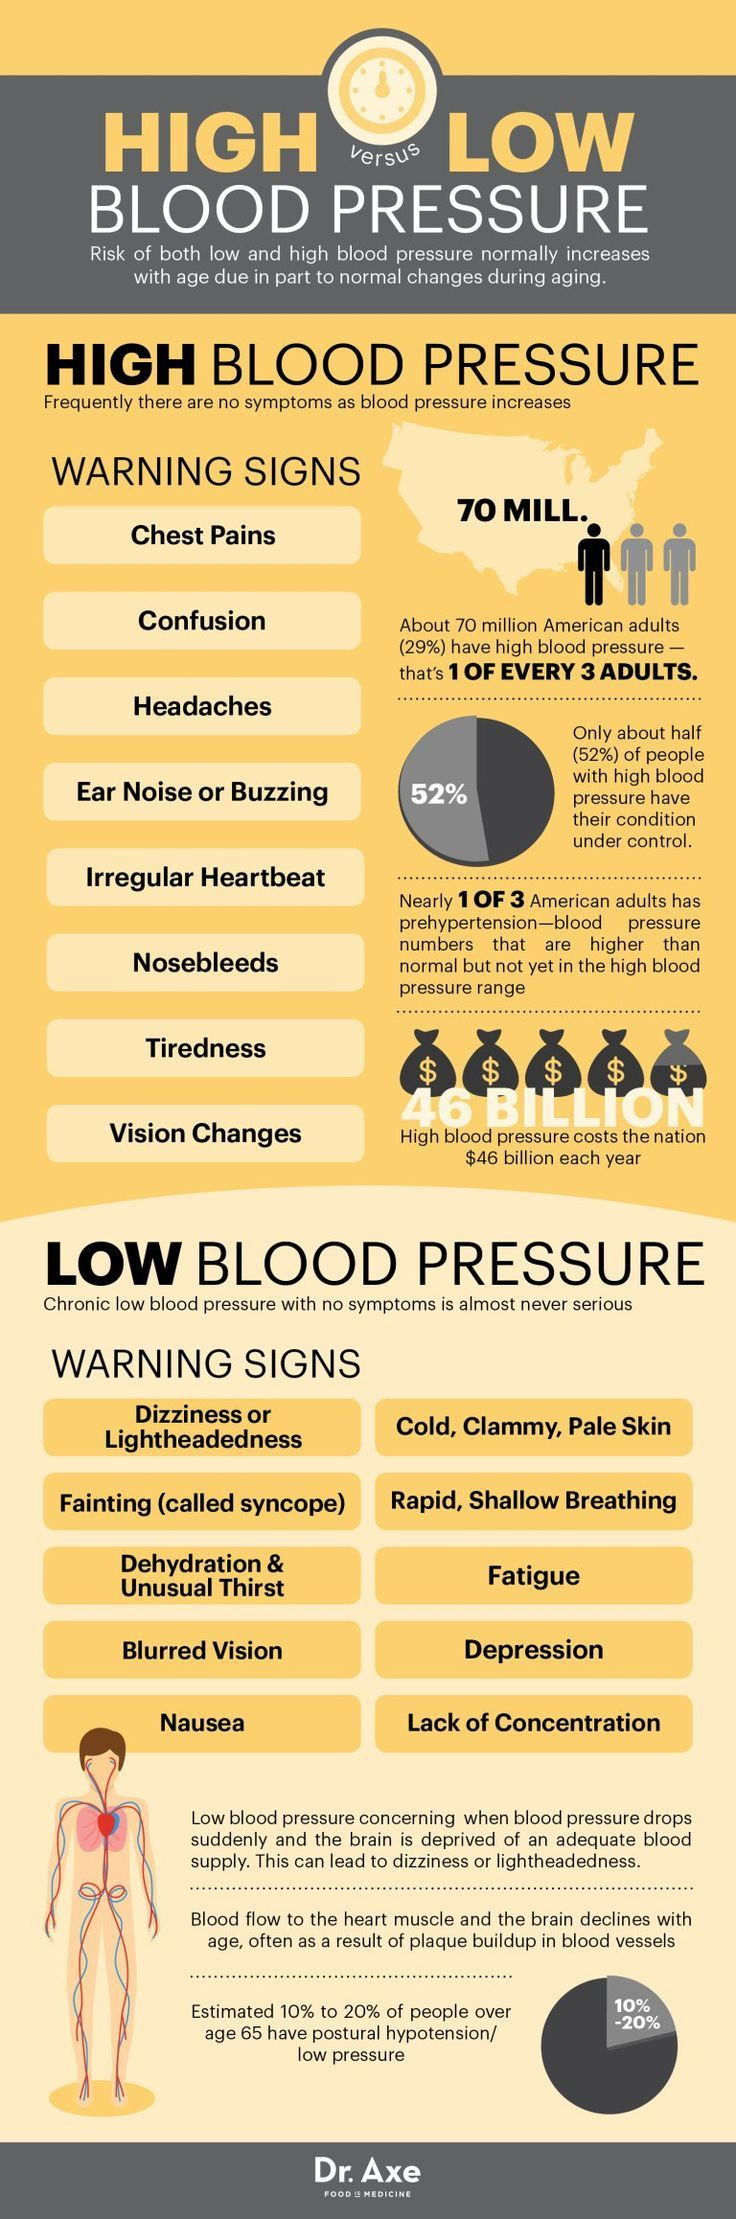 The risk of low or high blood pressure normally increases with age. It usually occurs as a part of the aging process. So, if you feel you're at risk of suffering from low or high blood pressure, given below are a list of symptoms you need to check on Source:http://draxe.com/?utm_content=buffer2a8ae&utm_medium=social&utm_source=pinterest.com&utm_campaign=buffer